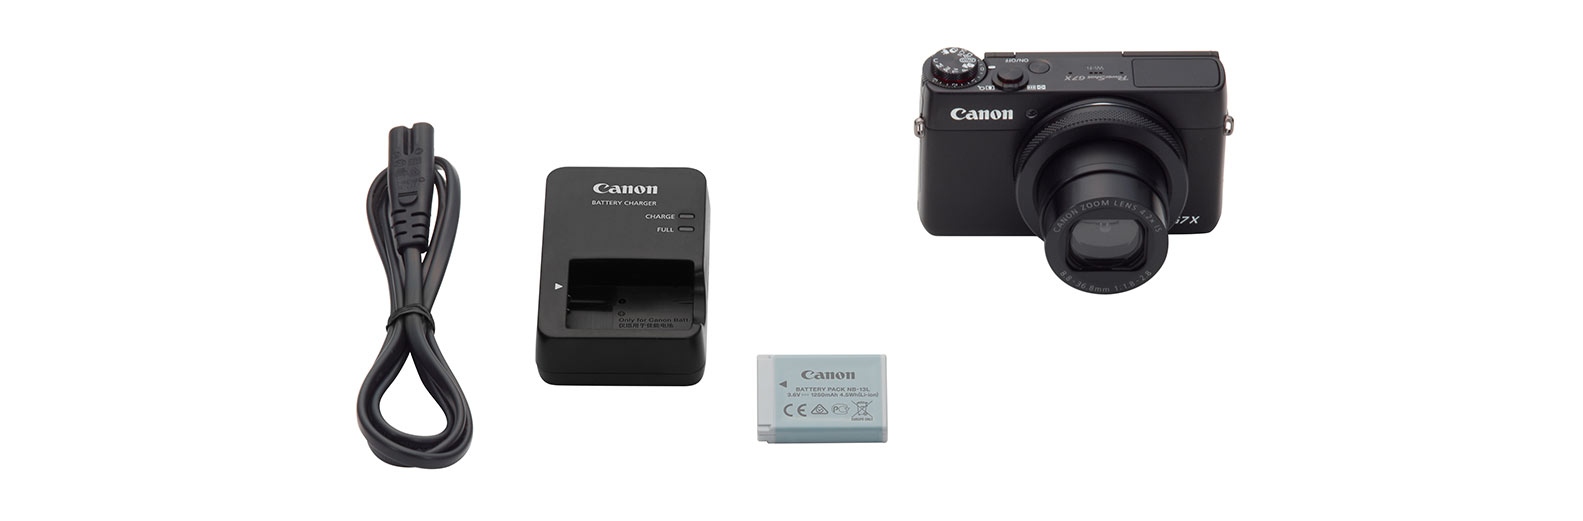 canon-press-centre-cameras-accessories.jpg